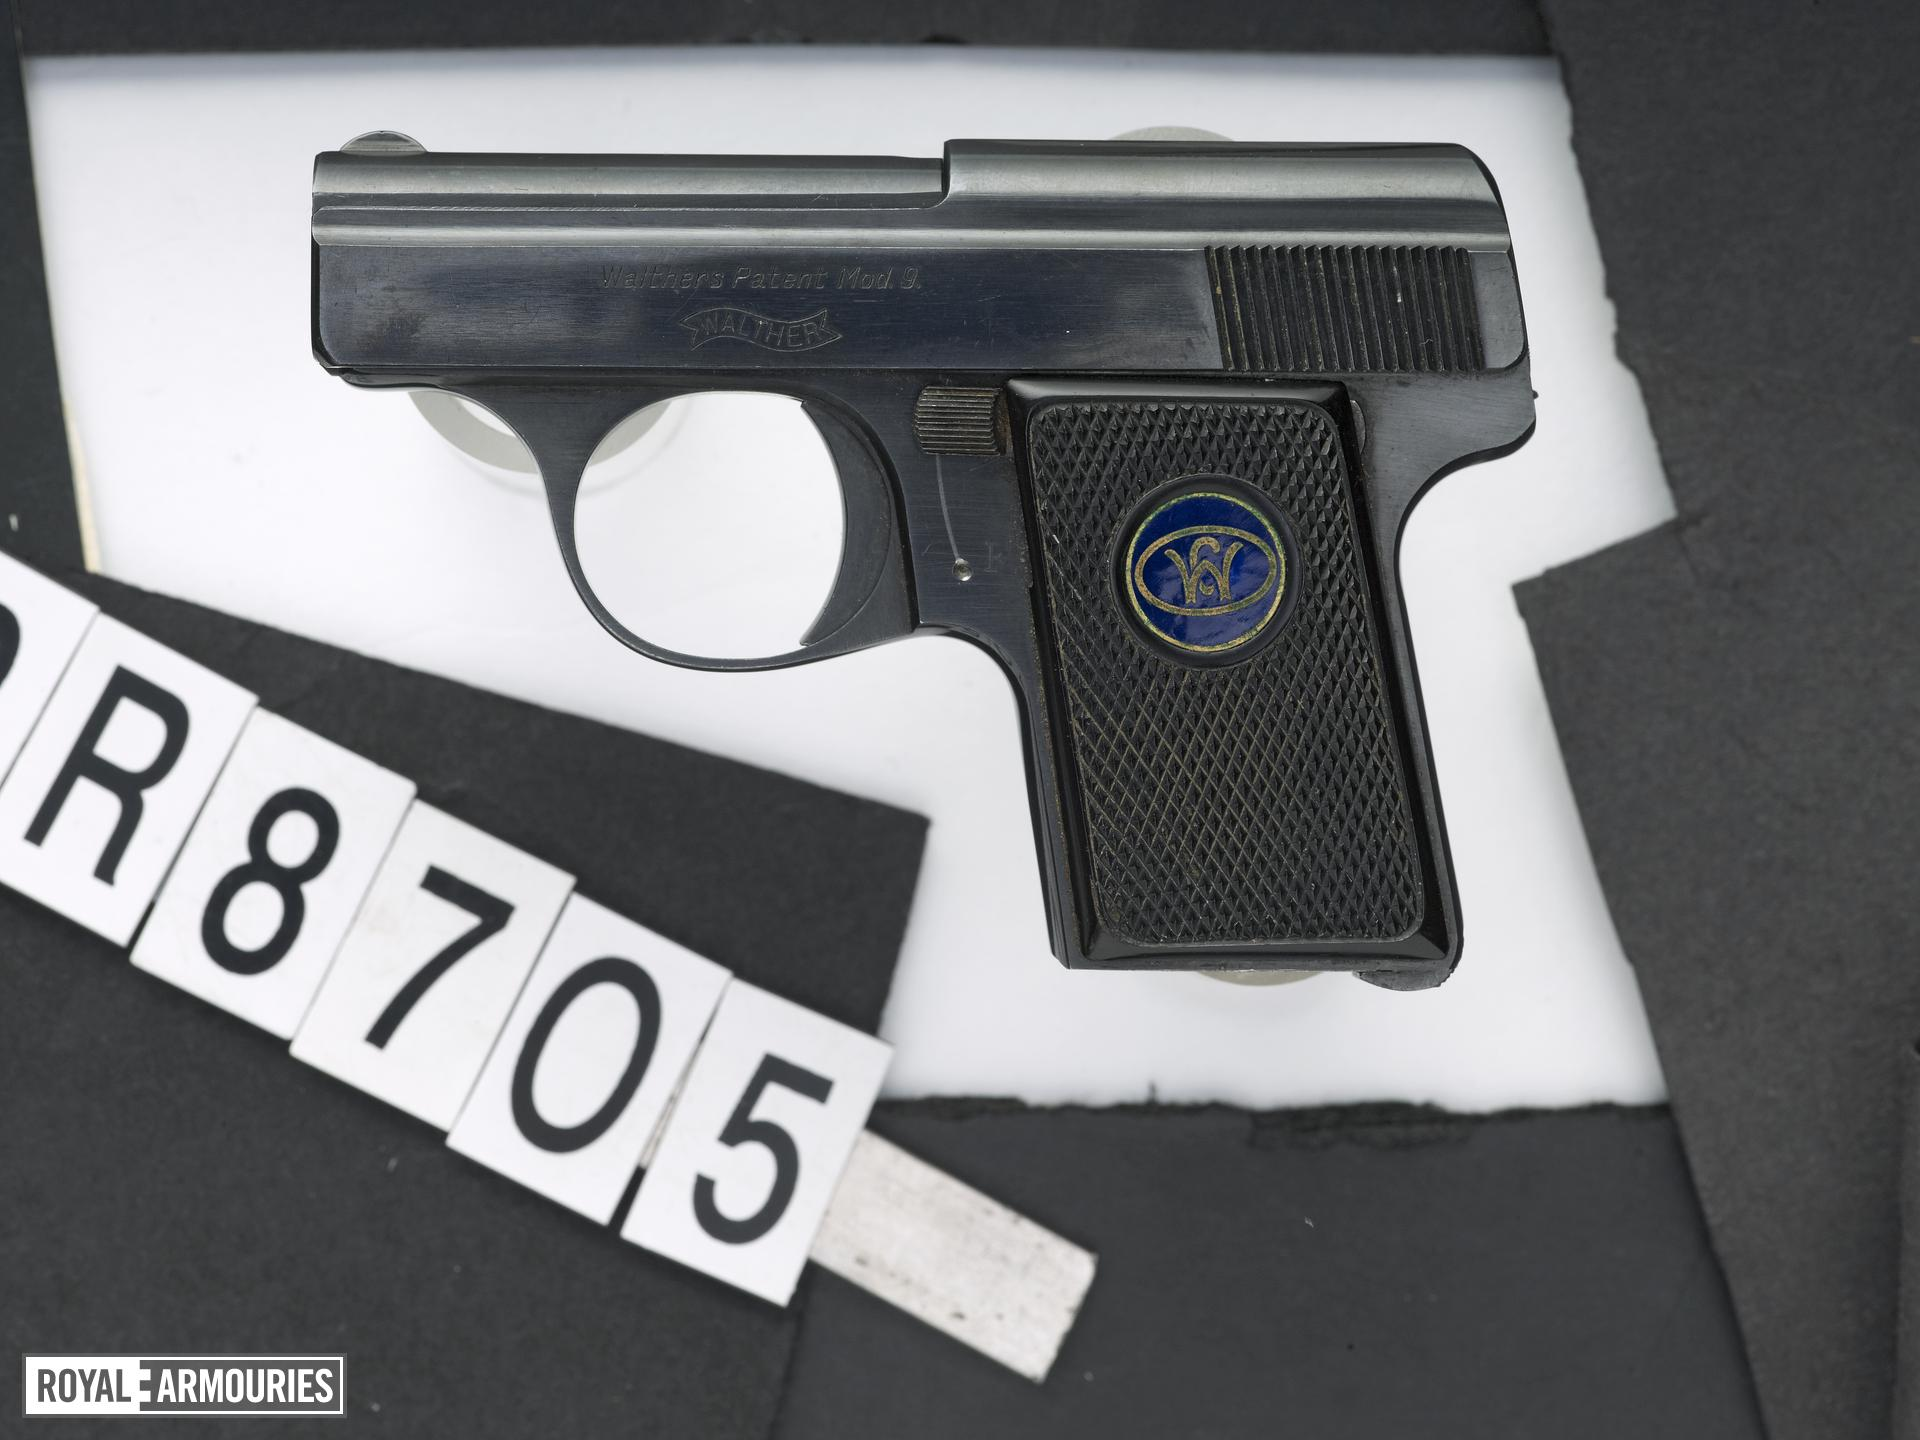 Centrefire self-loading pistol - Walther Model 9